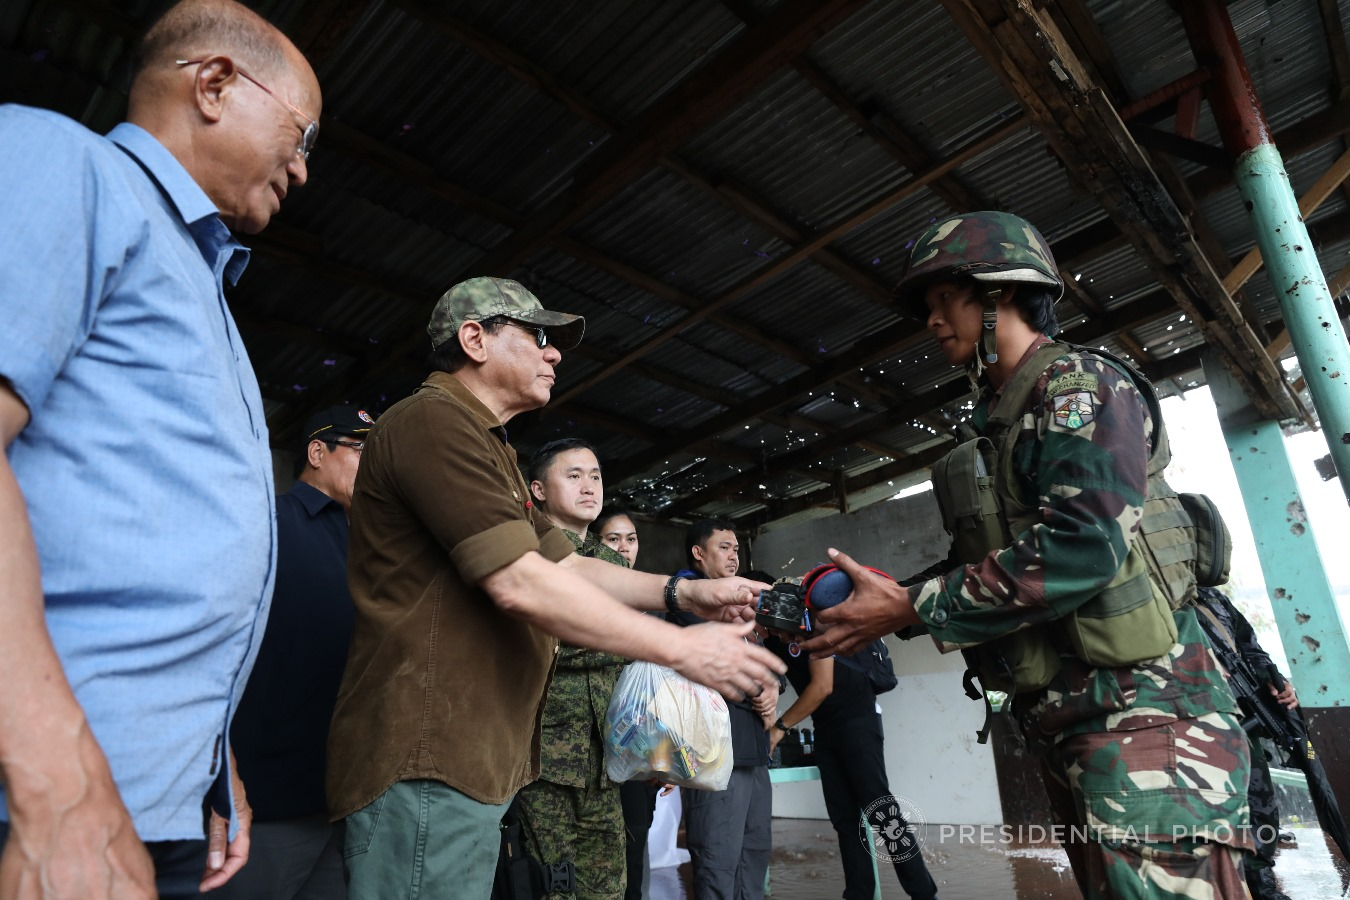 President Rodrigo Roa Duterte makes his seventh visit to Marawi City. On October 17, 2017, he declared the war-torn city's liberation from terrorists. His declaration came on the heels of the death of terrorist leaders, Isnilon Hapilon and Omar Maute.<br /> The President also announced that the liberation of Marawi City marks the start of the rehabilitation process of the war-torn city.<br /> Further, the President commended the military and the police for risking their lives fighting terrorists. He led the distribution of groceries, wrist watches, and sunglasses to government troops. He also gave them new pistols.<br /> Joining the President during the visit were Defense Secretary Delfin Lorenzana, Presidential Communications Secretary Martin Andanar, Armed Forces of the Philippines Chief of Staff General Eduardo Año, Philippine Army Commander Major General Rolando Bautista, Philippine National Police Director-General Ronald dela Rosa, and Special Assistant to the President Christopher Lawrence Go.